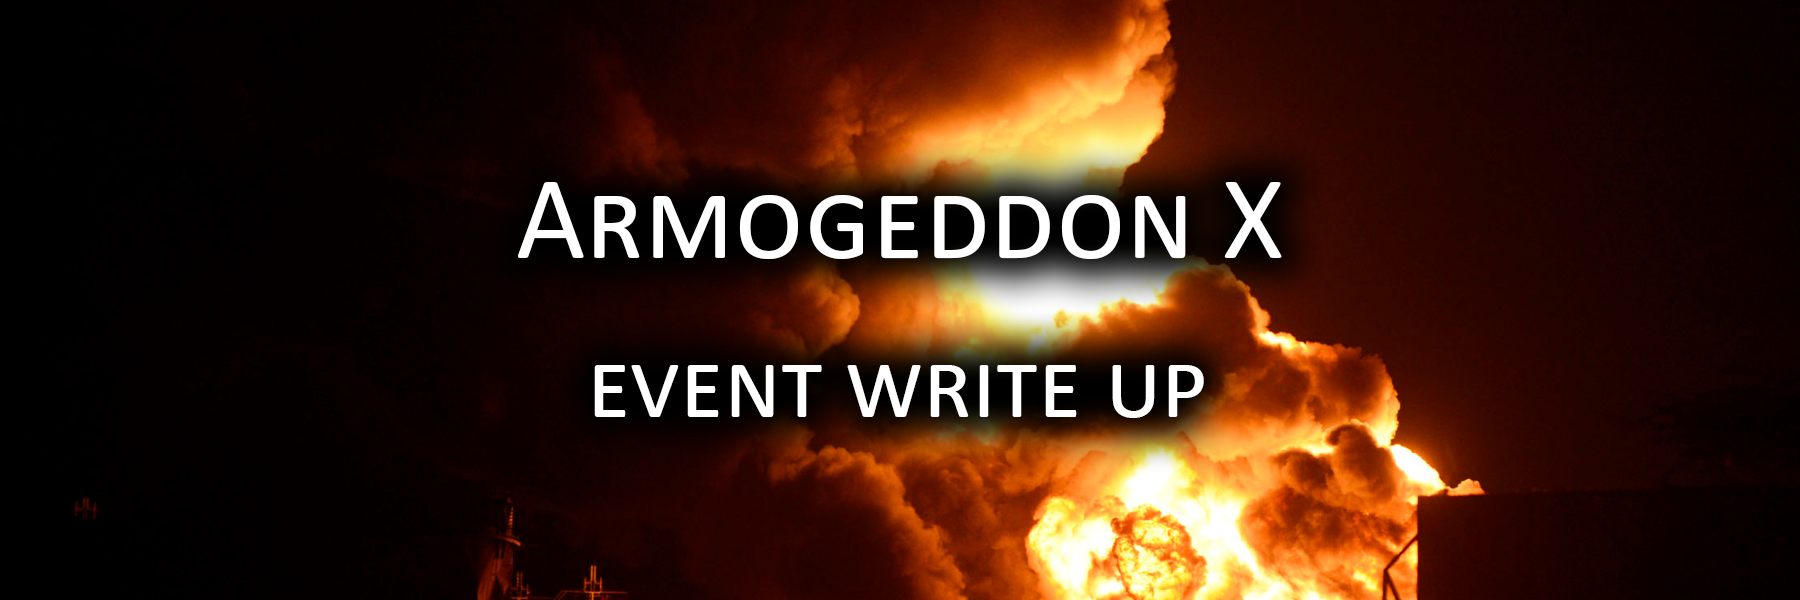 Armogeddon 2016 Event Writeup